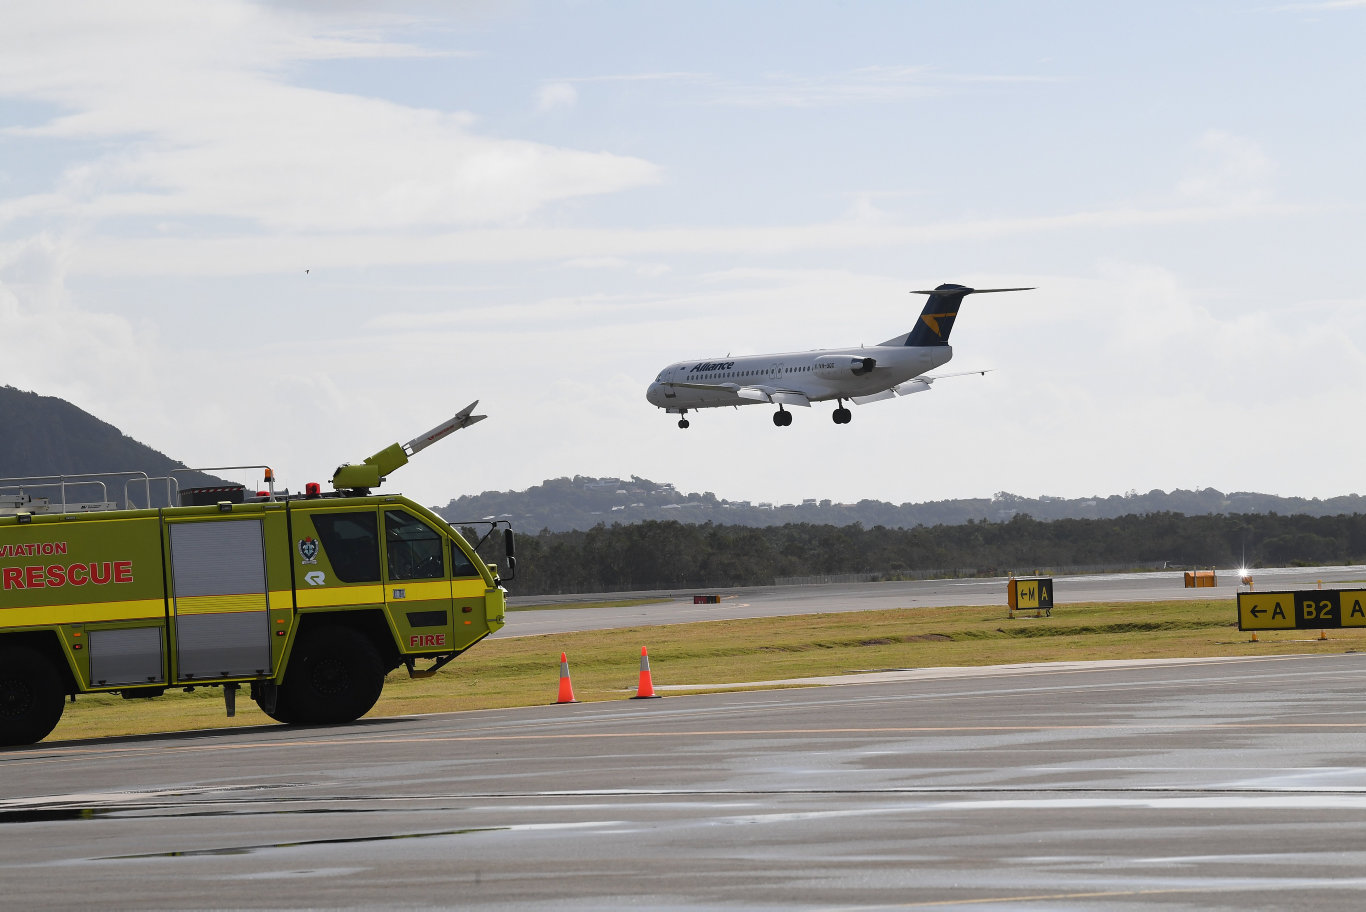 After more than 11 weeks since closing its terminal and farewelling its last passenger jet, Sunshine Coast Airport is now set to welcome the arrival of the first flight on its new runway which will officially open on Sunday.An Alliance Airlines Fokker 100 will be the first to touchdown on the tarmac, with the aircraft expected to land from west-east on the new 2450m x 45m runway at approximately 9.30am, subject to weather conditions and operational considerations on the day.